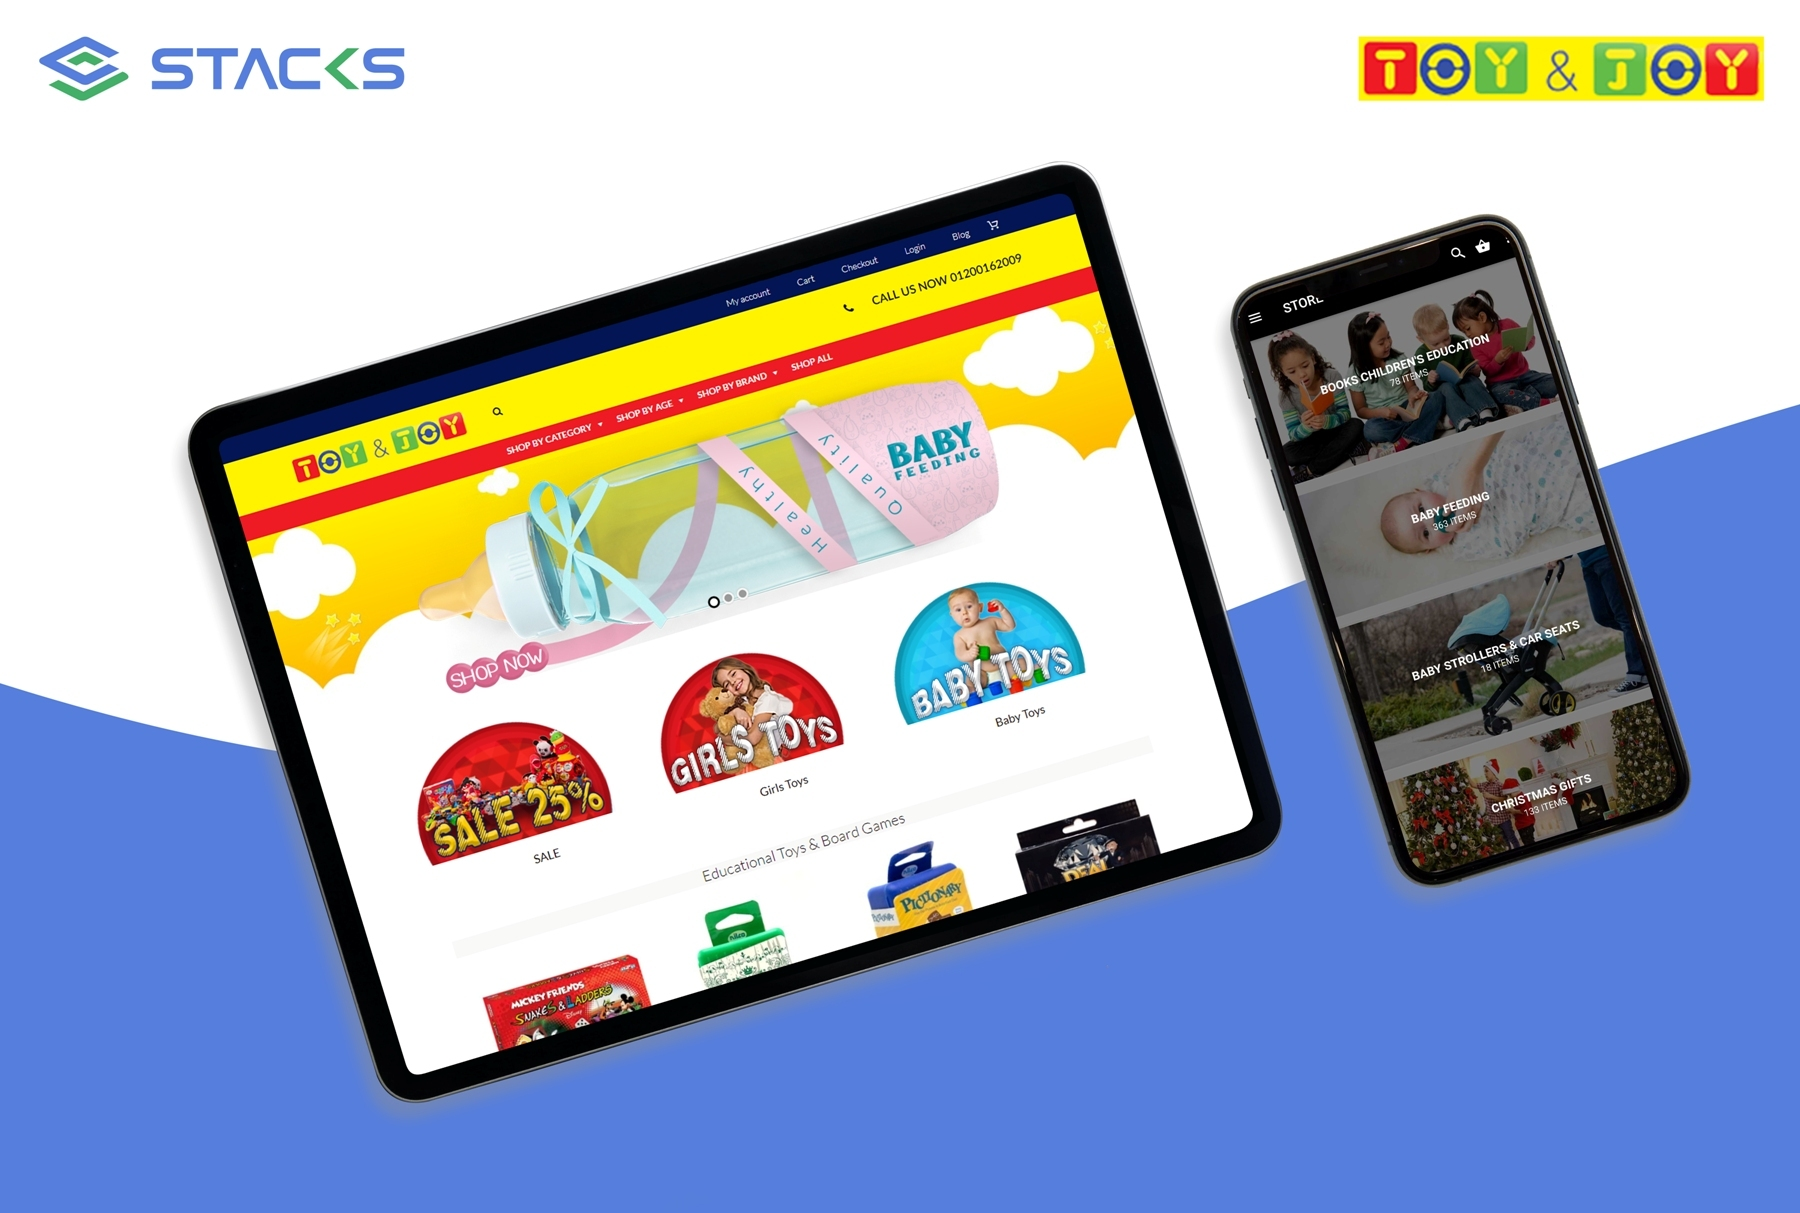 Toy & Joy website and mobile app